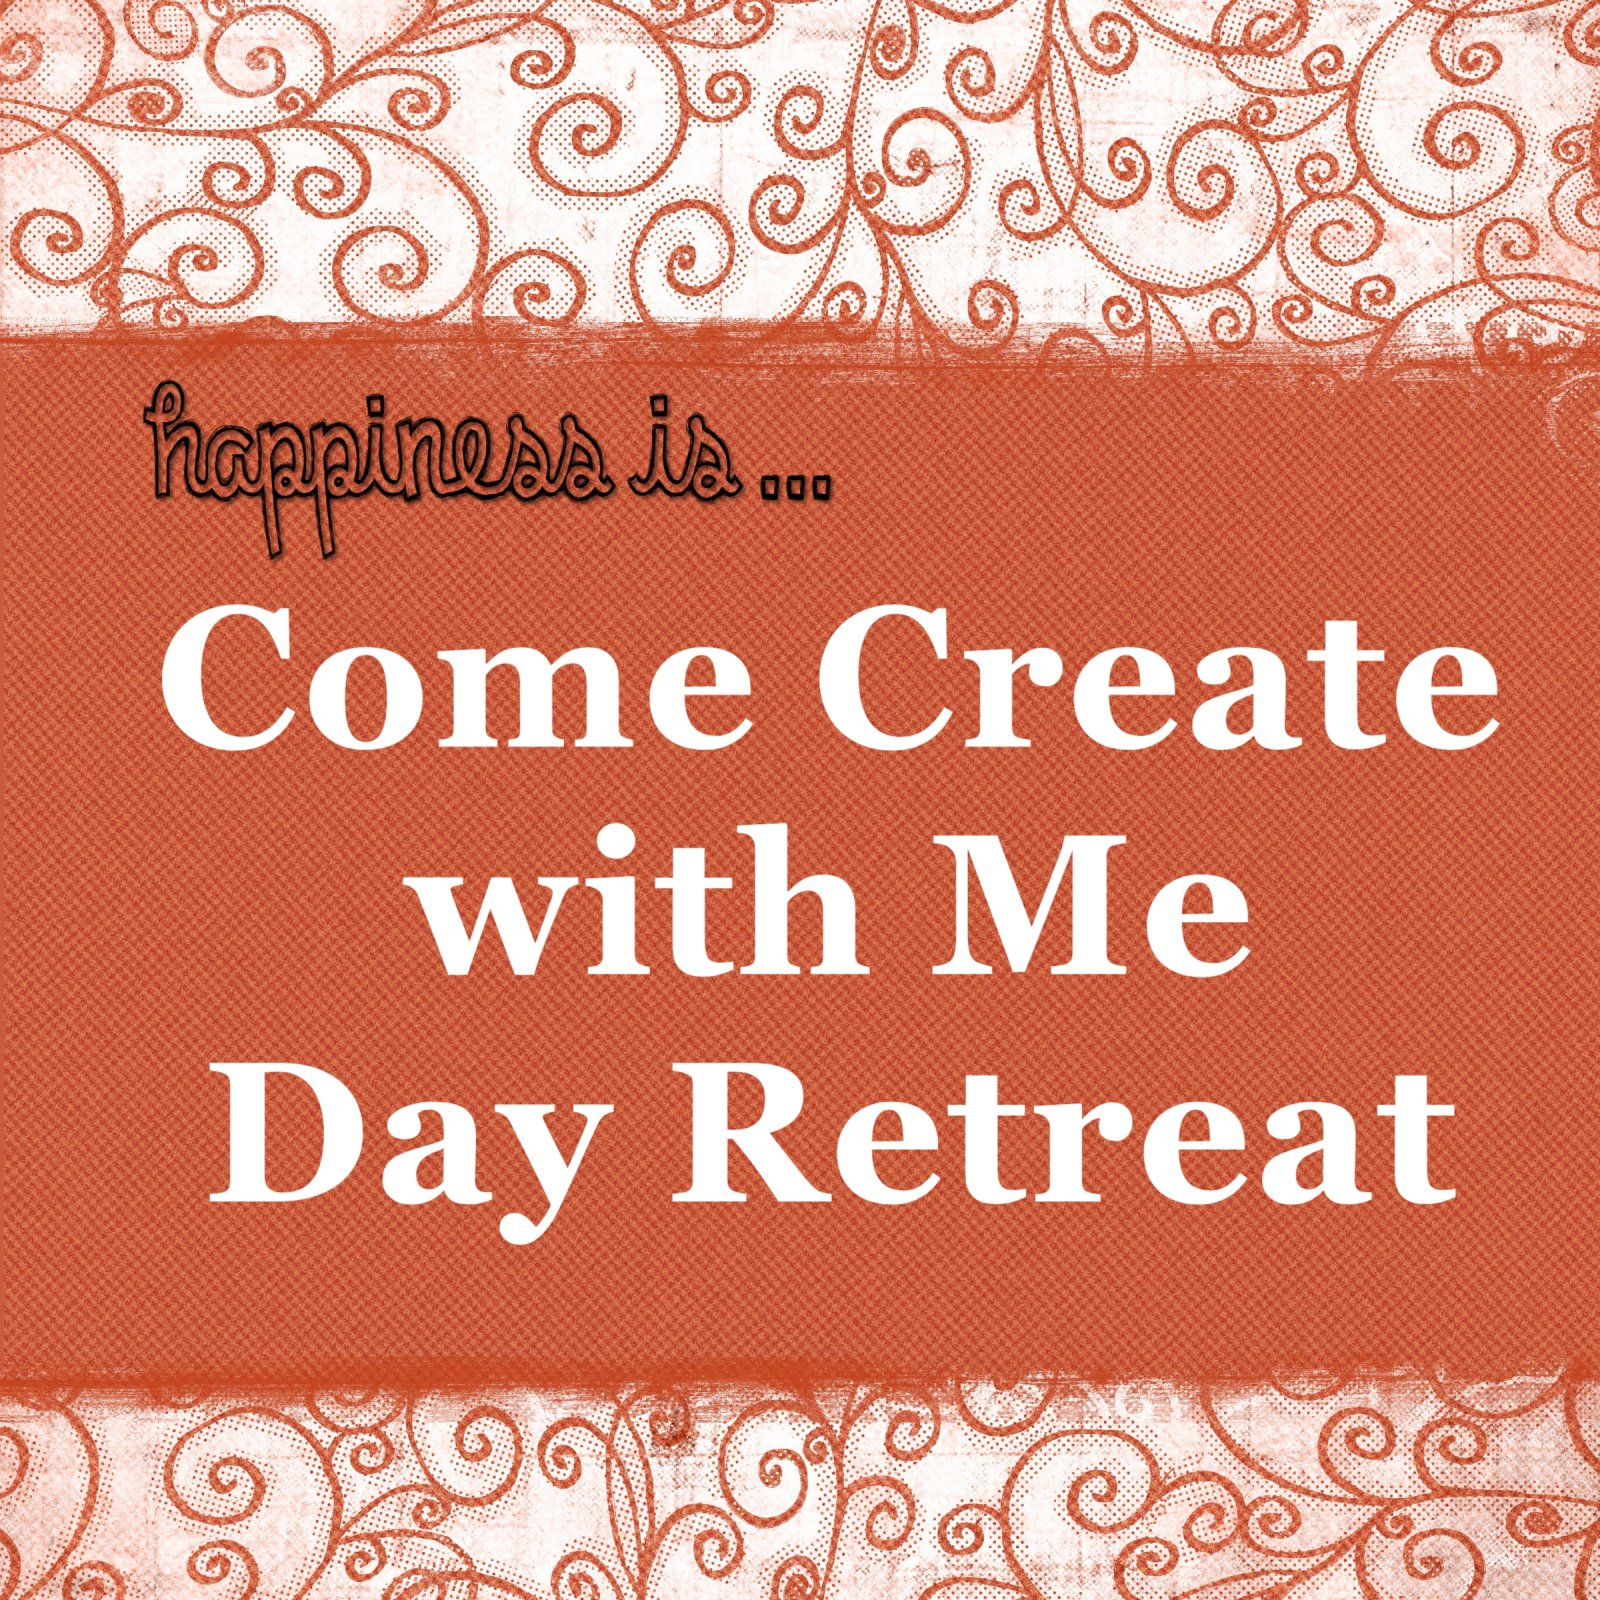 Come Create with Me Day Retreat--October 5, 2021